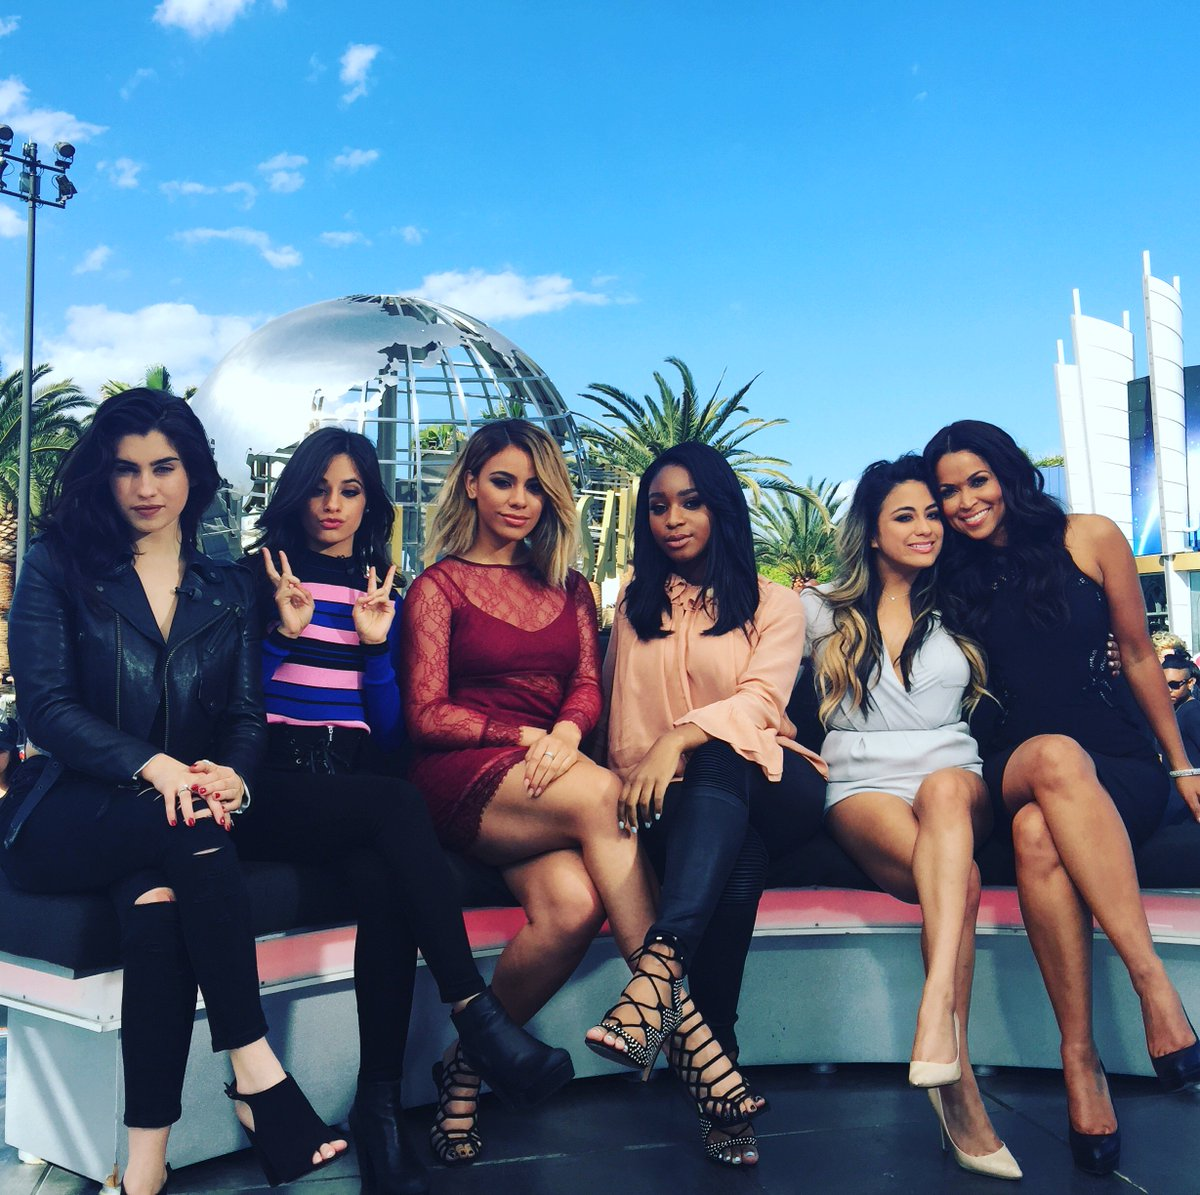 Don't miss my fun chat with the GORGEOUS & TALENTED ladies of @FifthHarmony tonight on @Extratv :)!! https://t.co/sCsJZ1NfYB